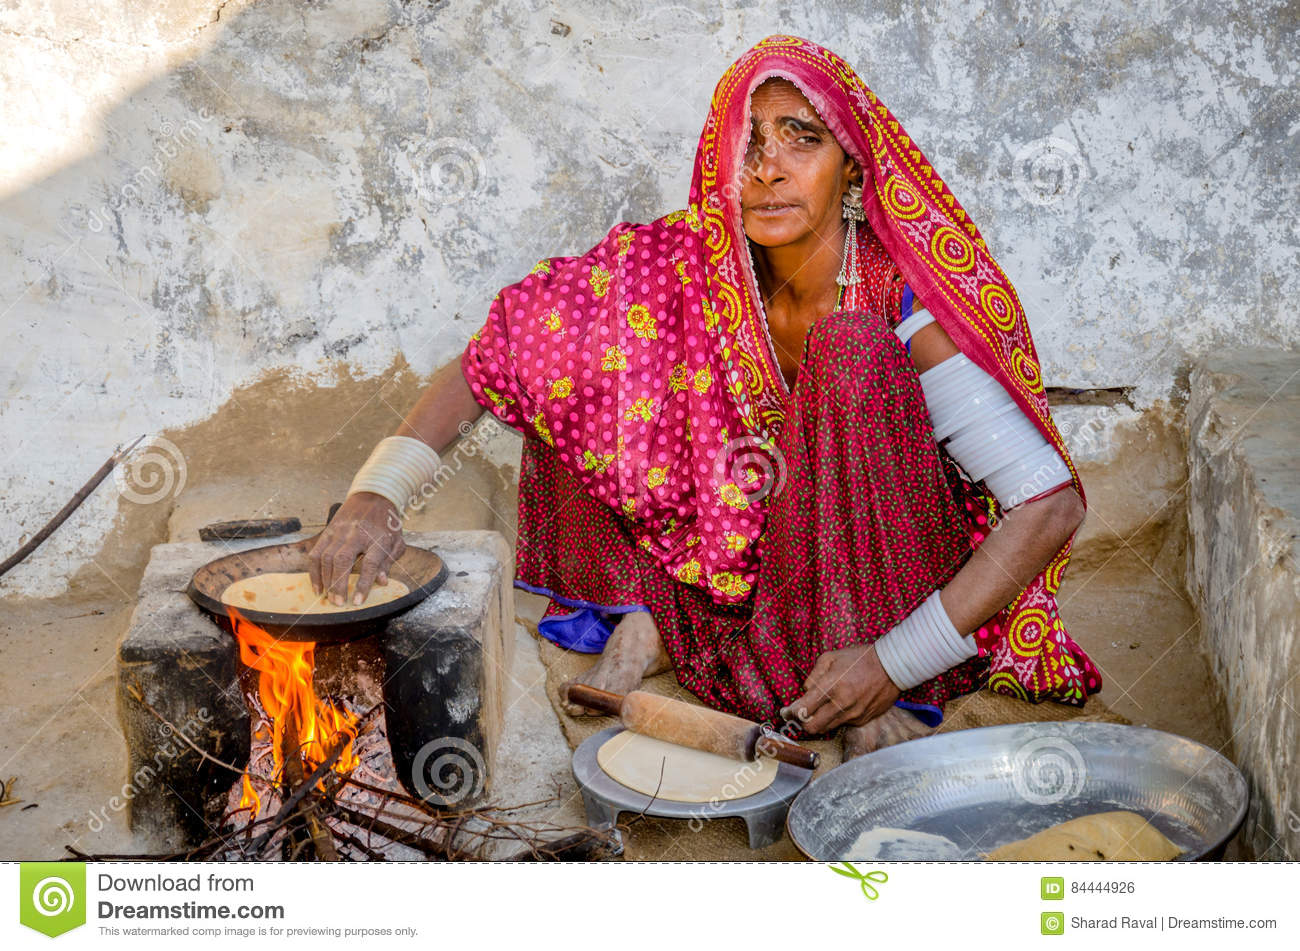 Woman Cooking Food On Wood Fire. Editorial Photo - Image of bake, chapati: 84444926